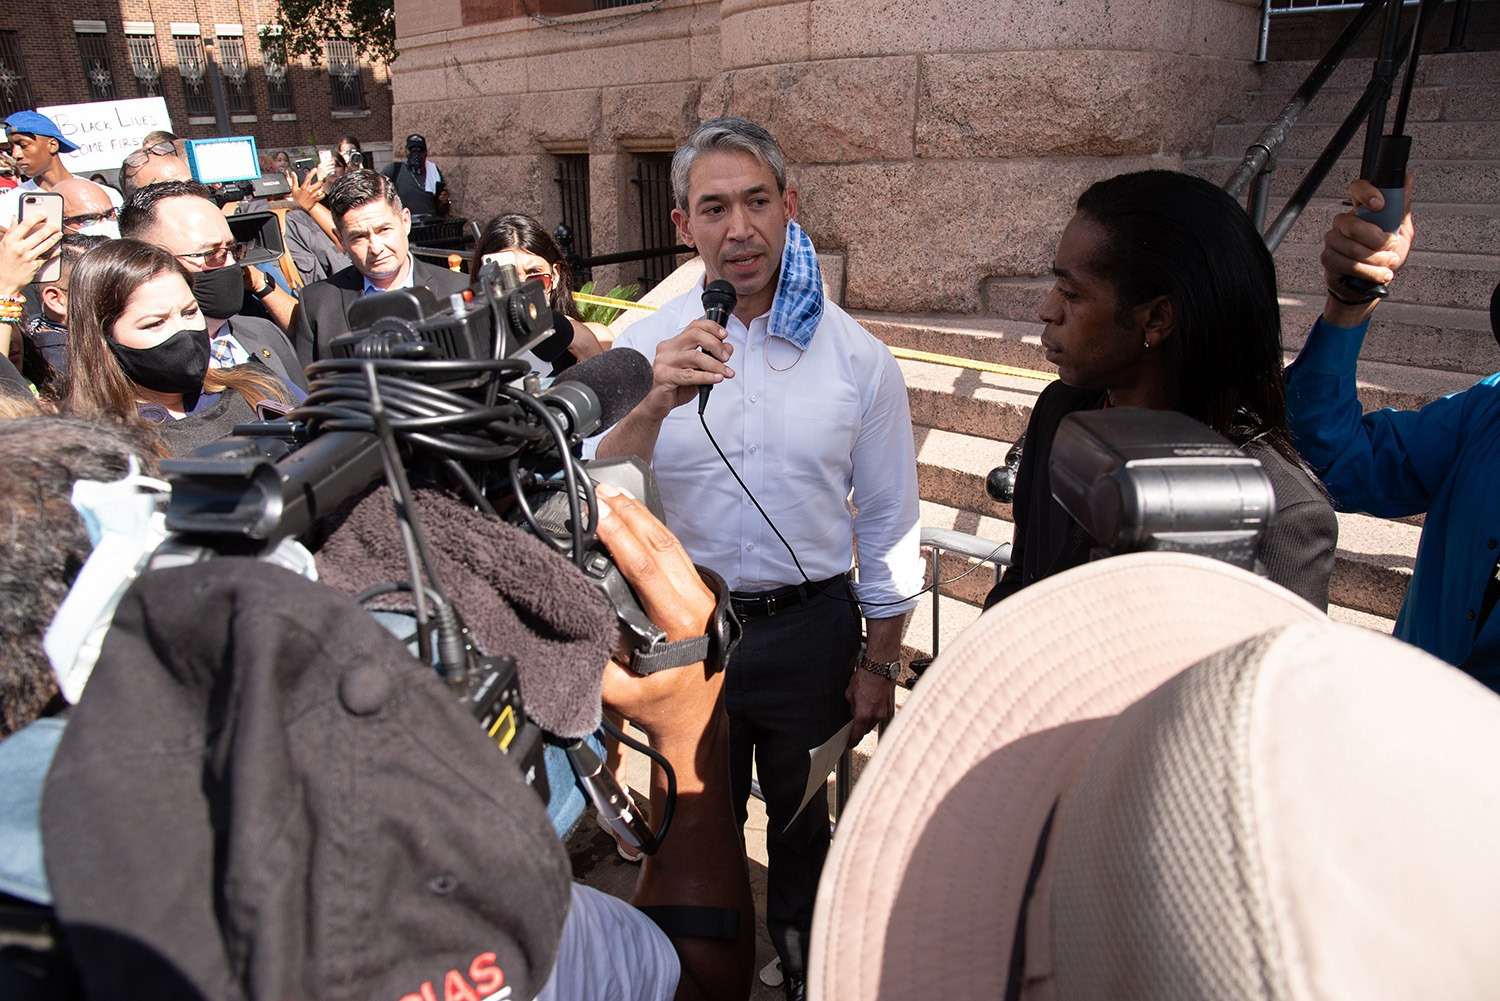 Mayor Ron Nirenberg speaks with protestors, Thursday, June 4 at the Bexar County Courthouse.Photo by V. Finster | Heron Contributor